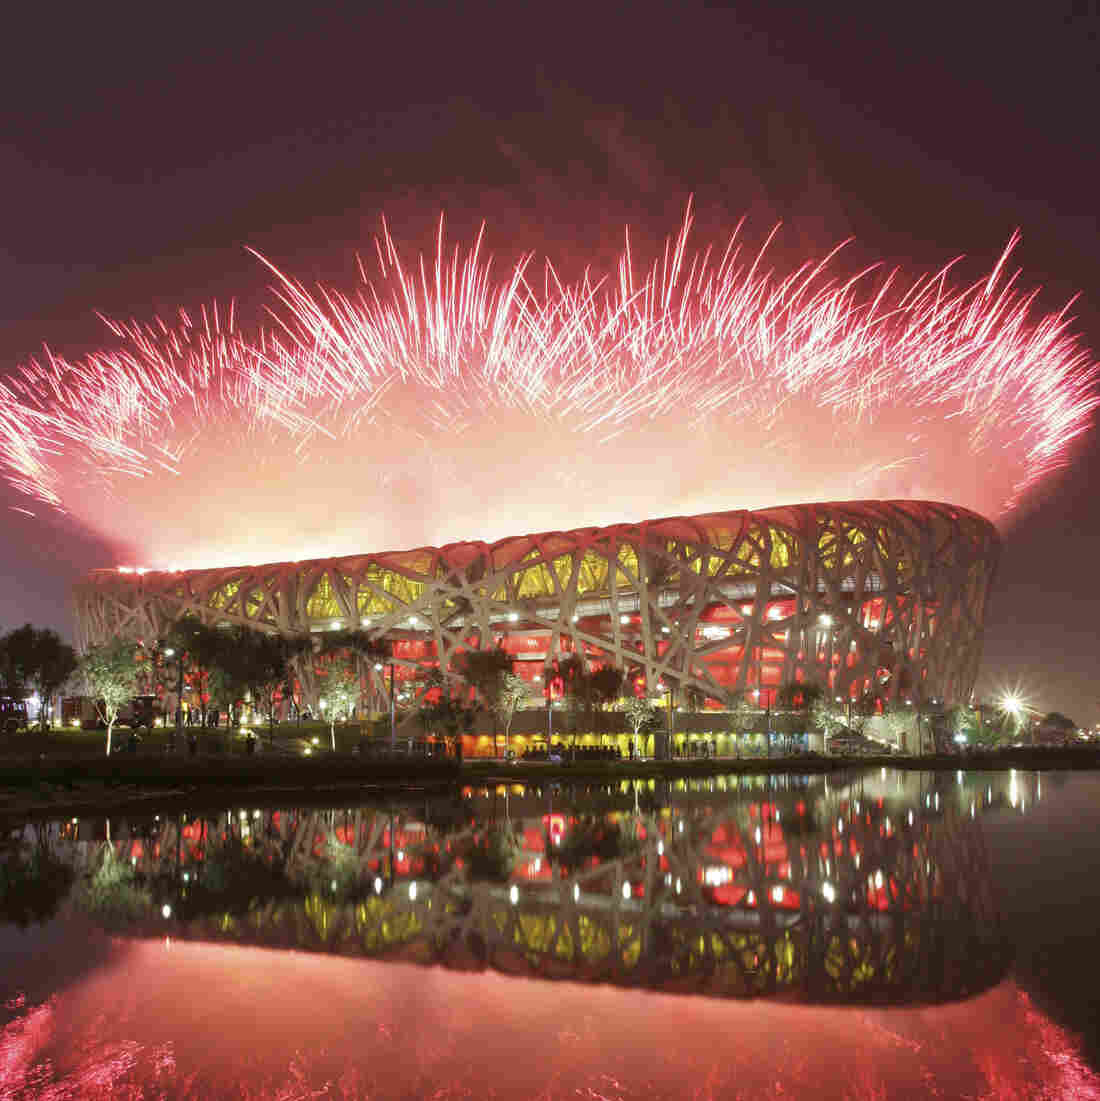 Beijing's National Stadium, or the Bird's Nest, will be used for the opening and closing ceremonies of the 2022 Winter Games.